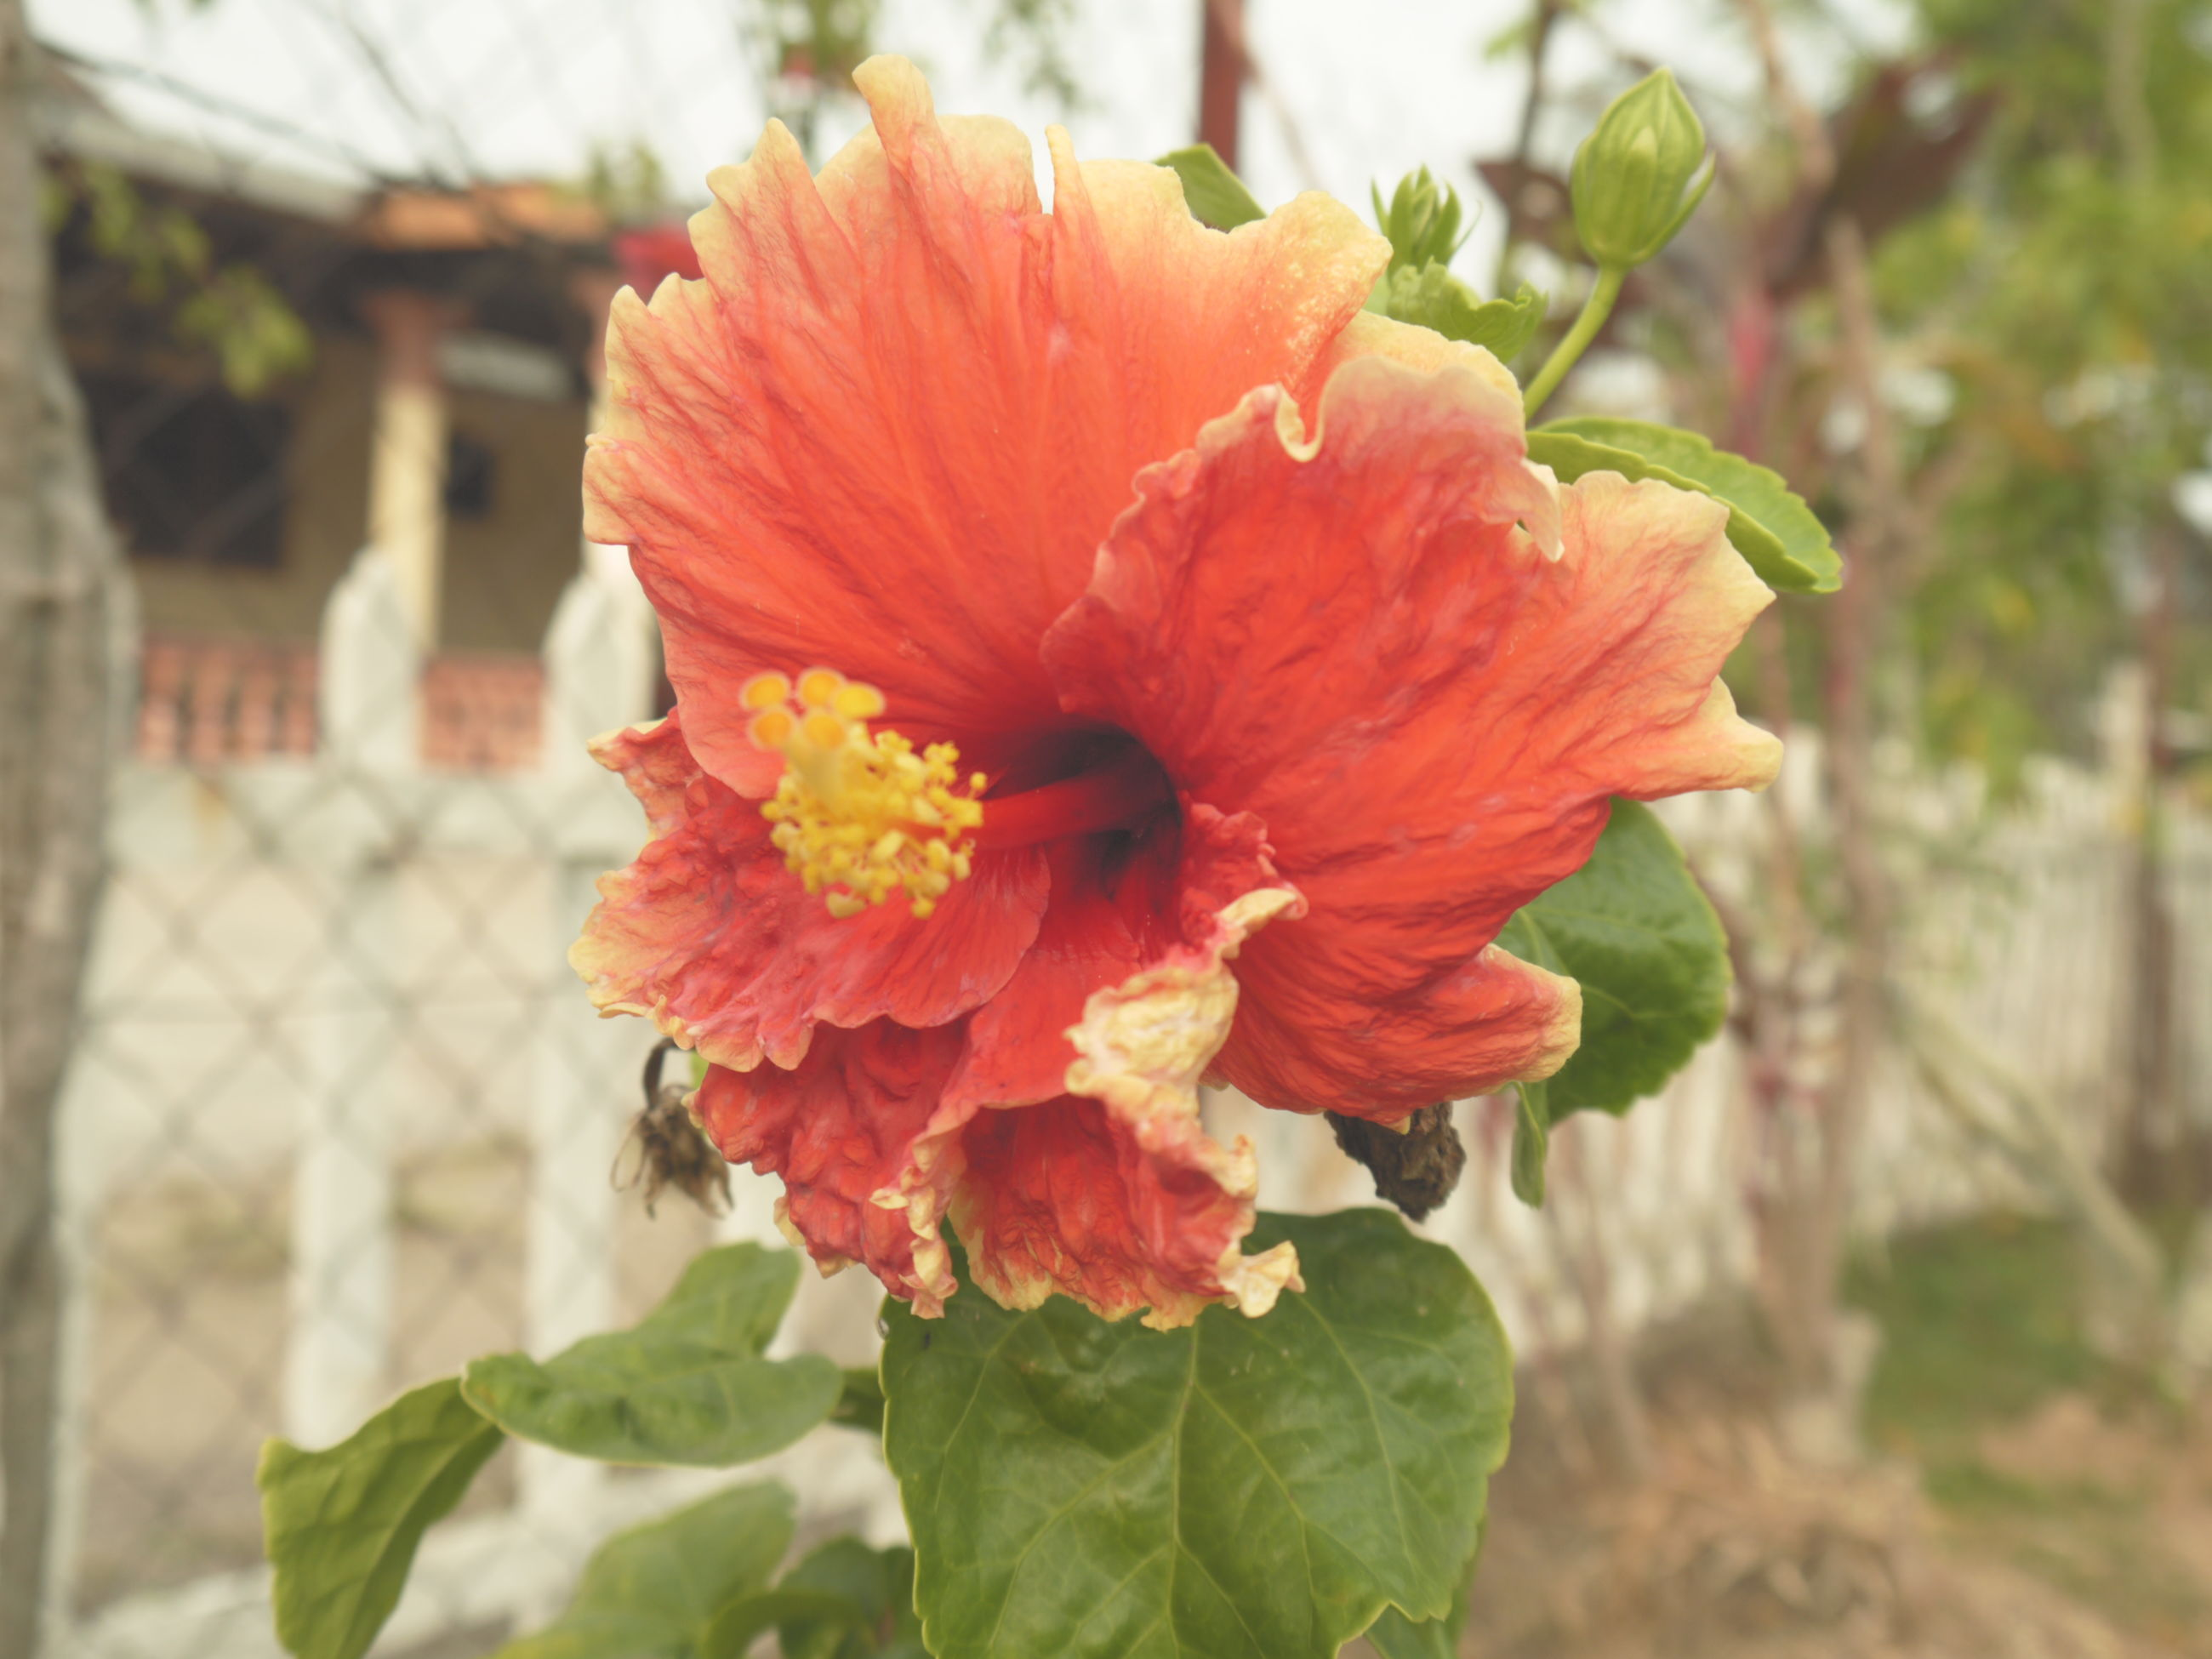 flower, petal, freshness, flower head, fragility, focus on foreground, growth, close-up, beauty in nature, orange color, blooming, nature, plant, red, single flower, in bloom, hibiscus, day, leaf, pollen